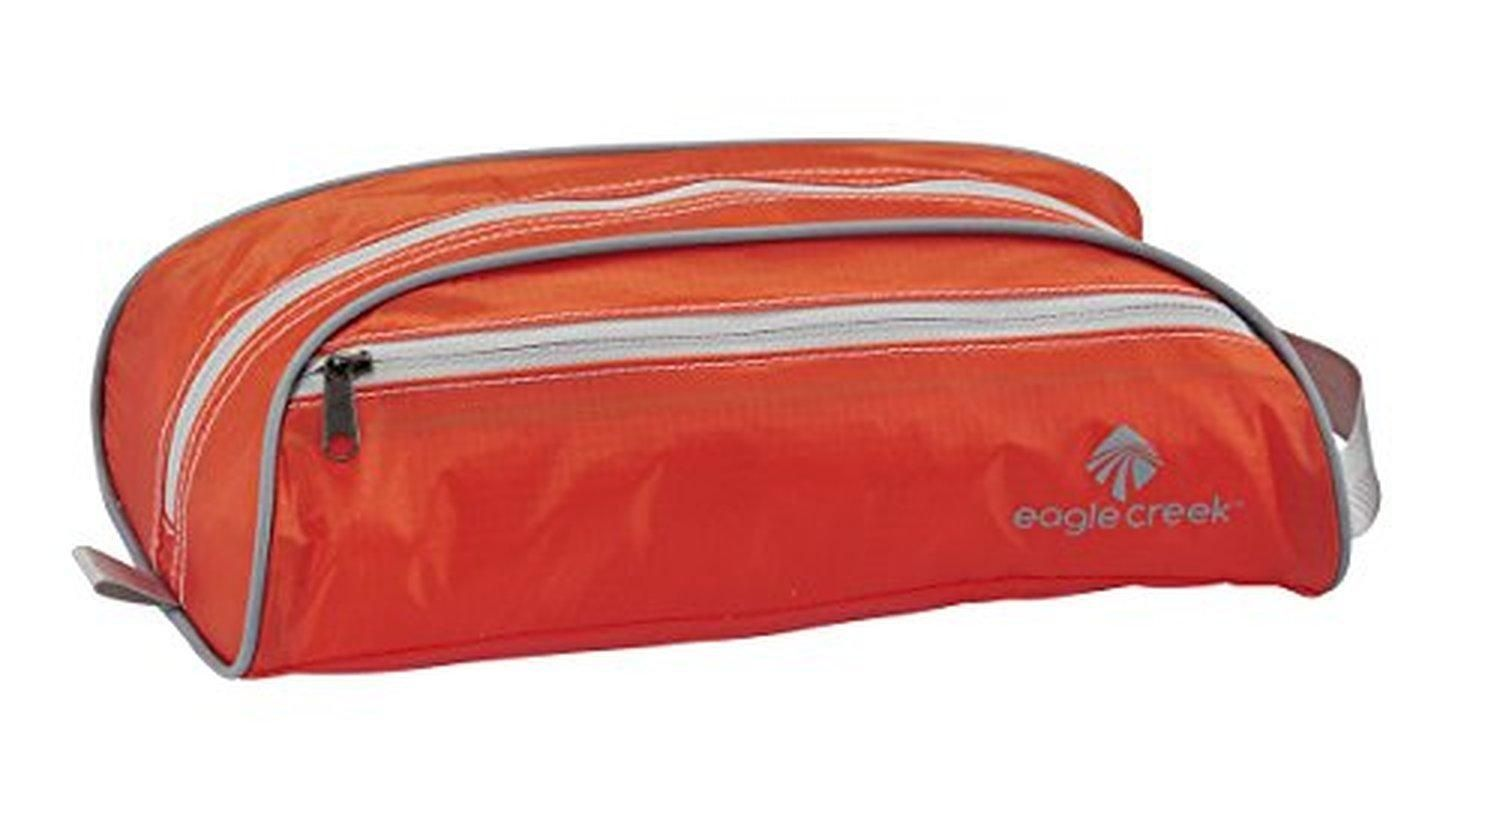 1317dc75e52 Eagle Creek Pack It Specter Quick Trip Toiletry Bag, Flame Orange - Brought  to you by Avarsha.com